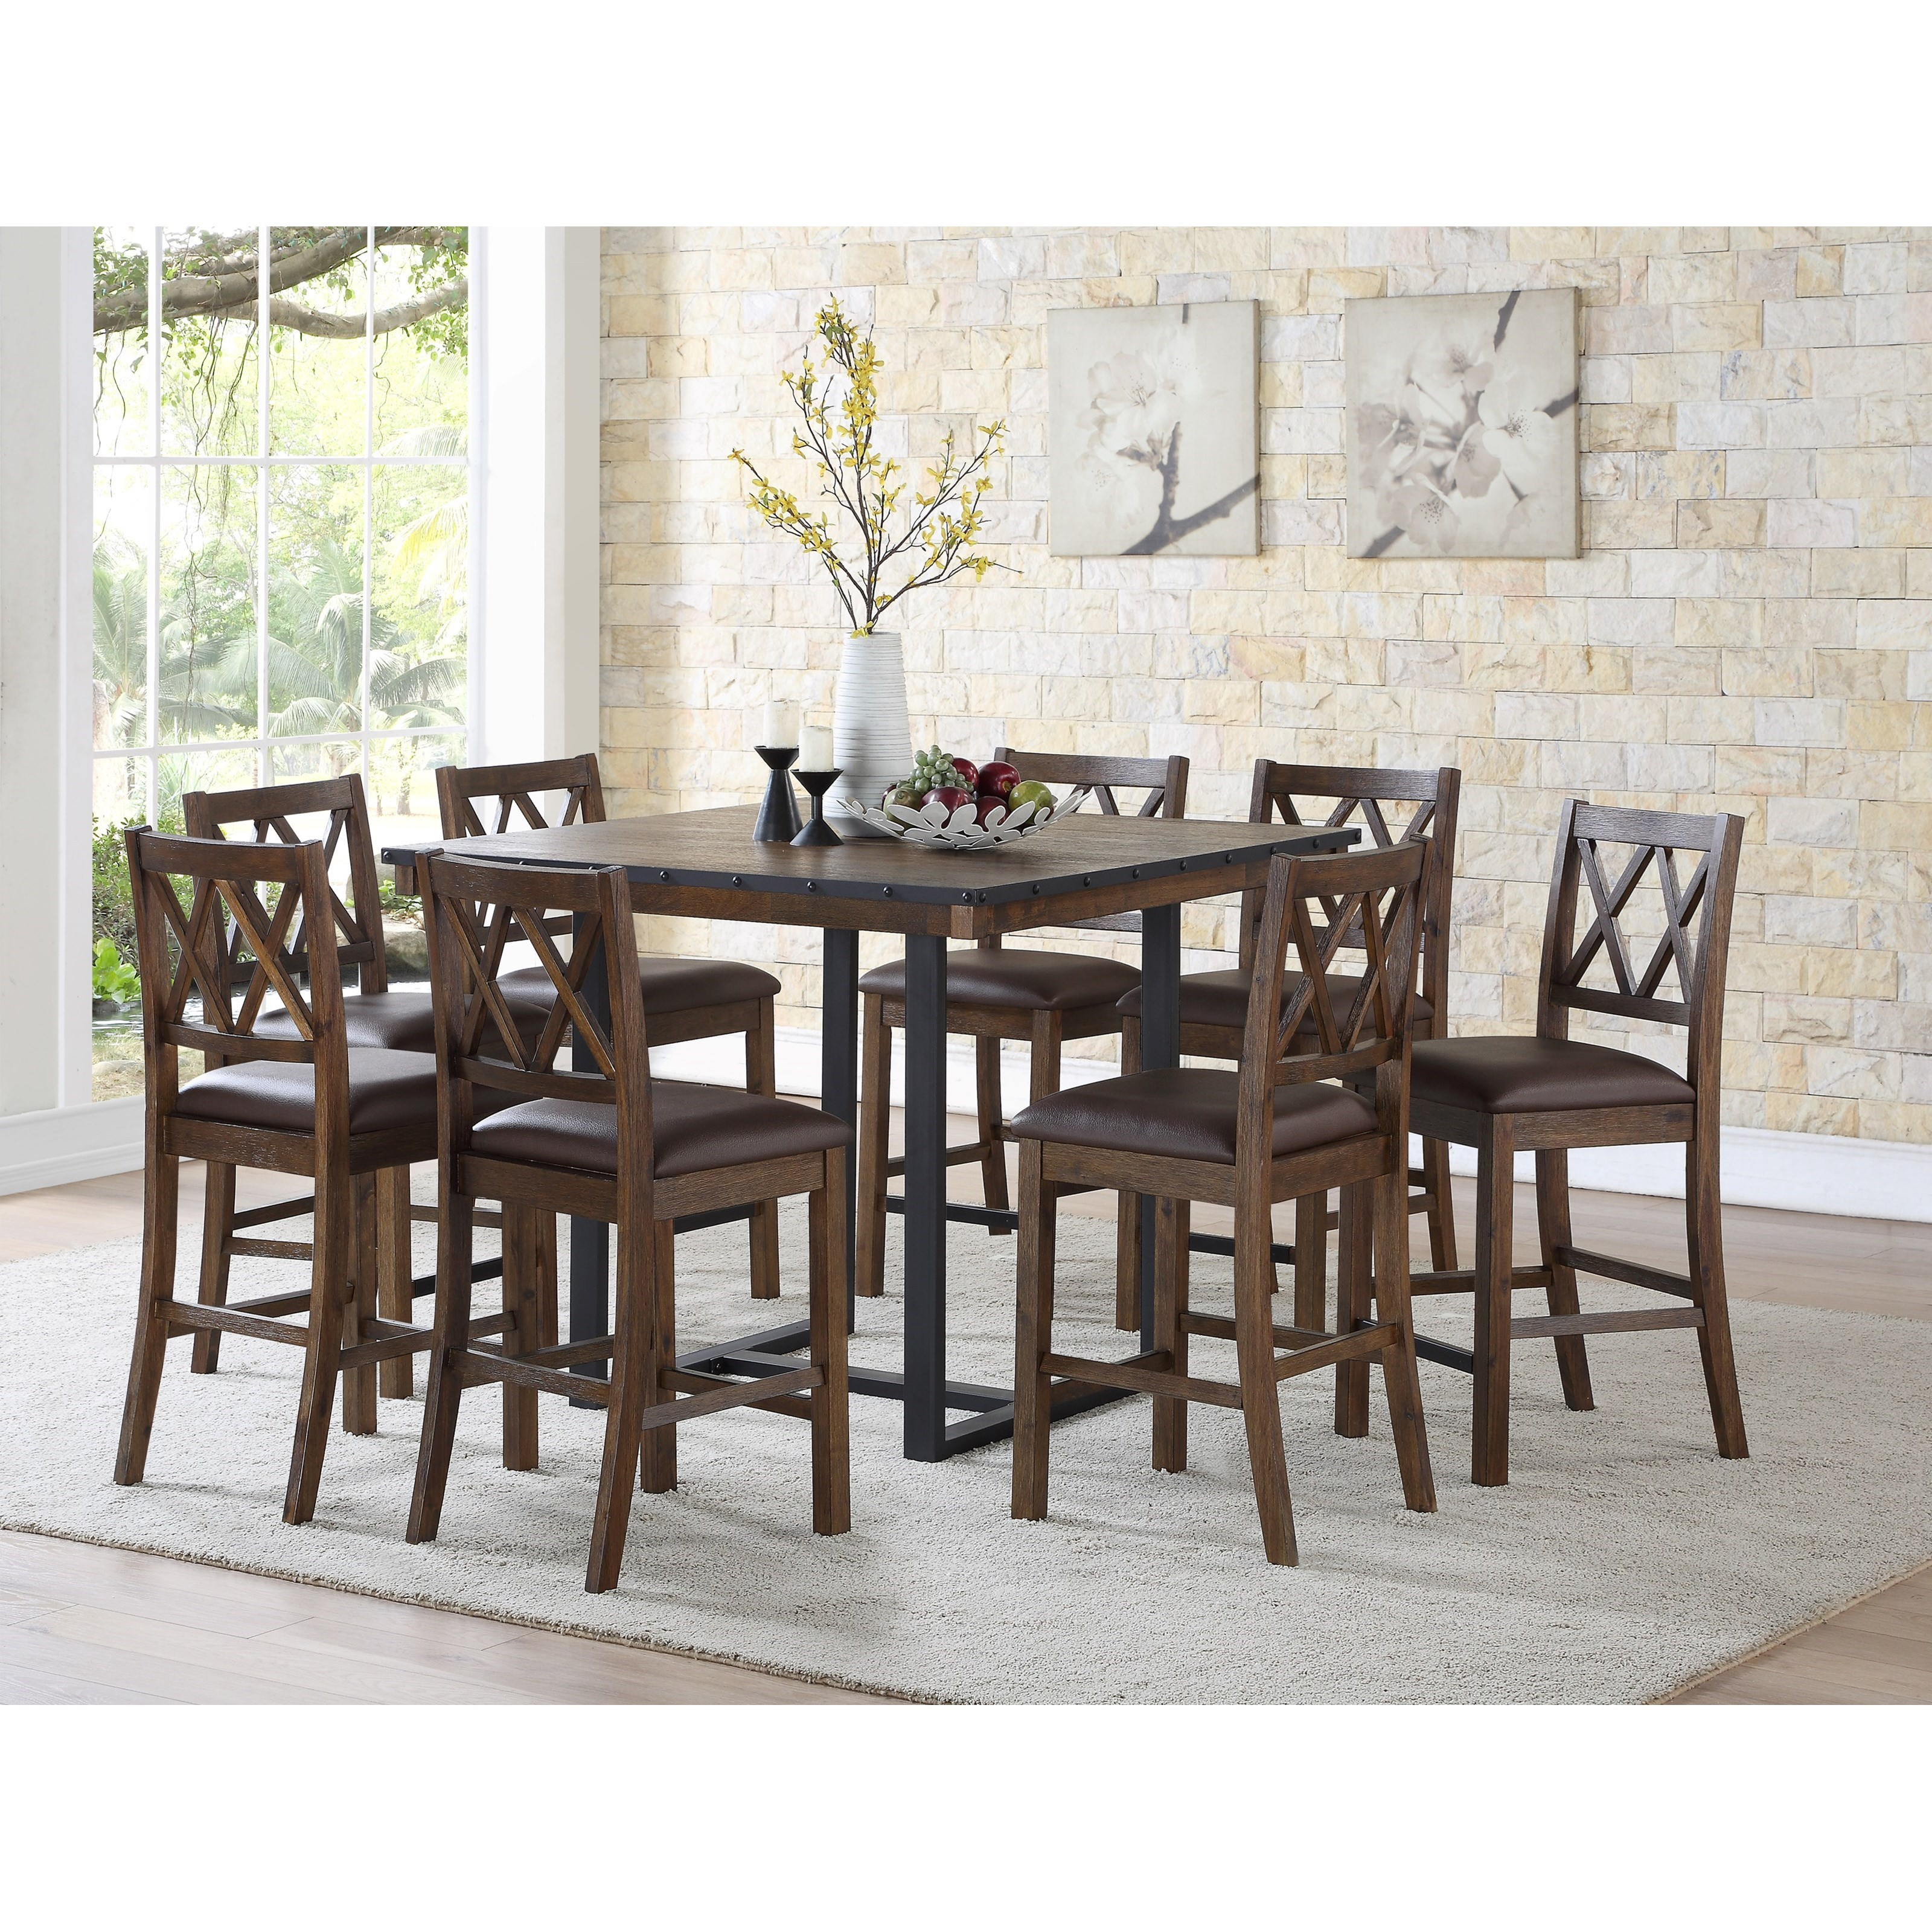 Lori 9 piece counter table and chair set